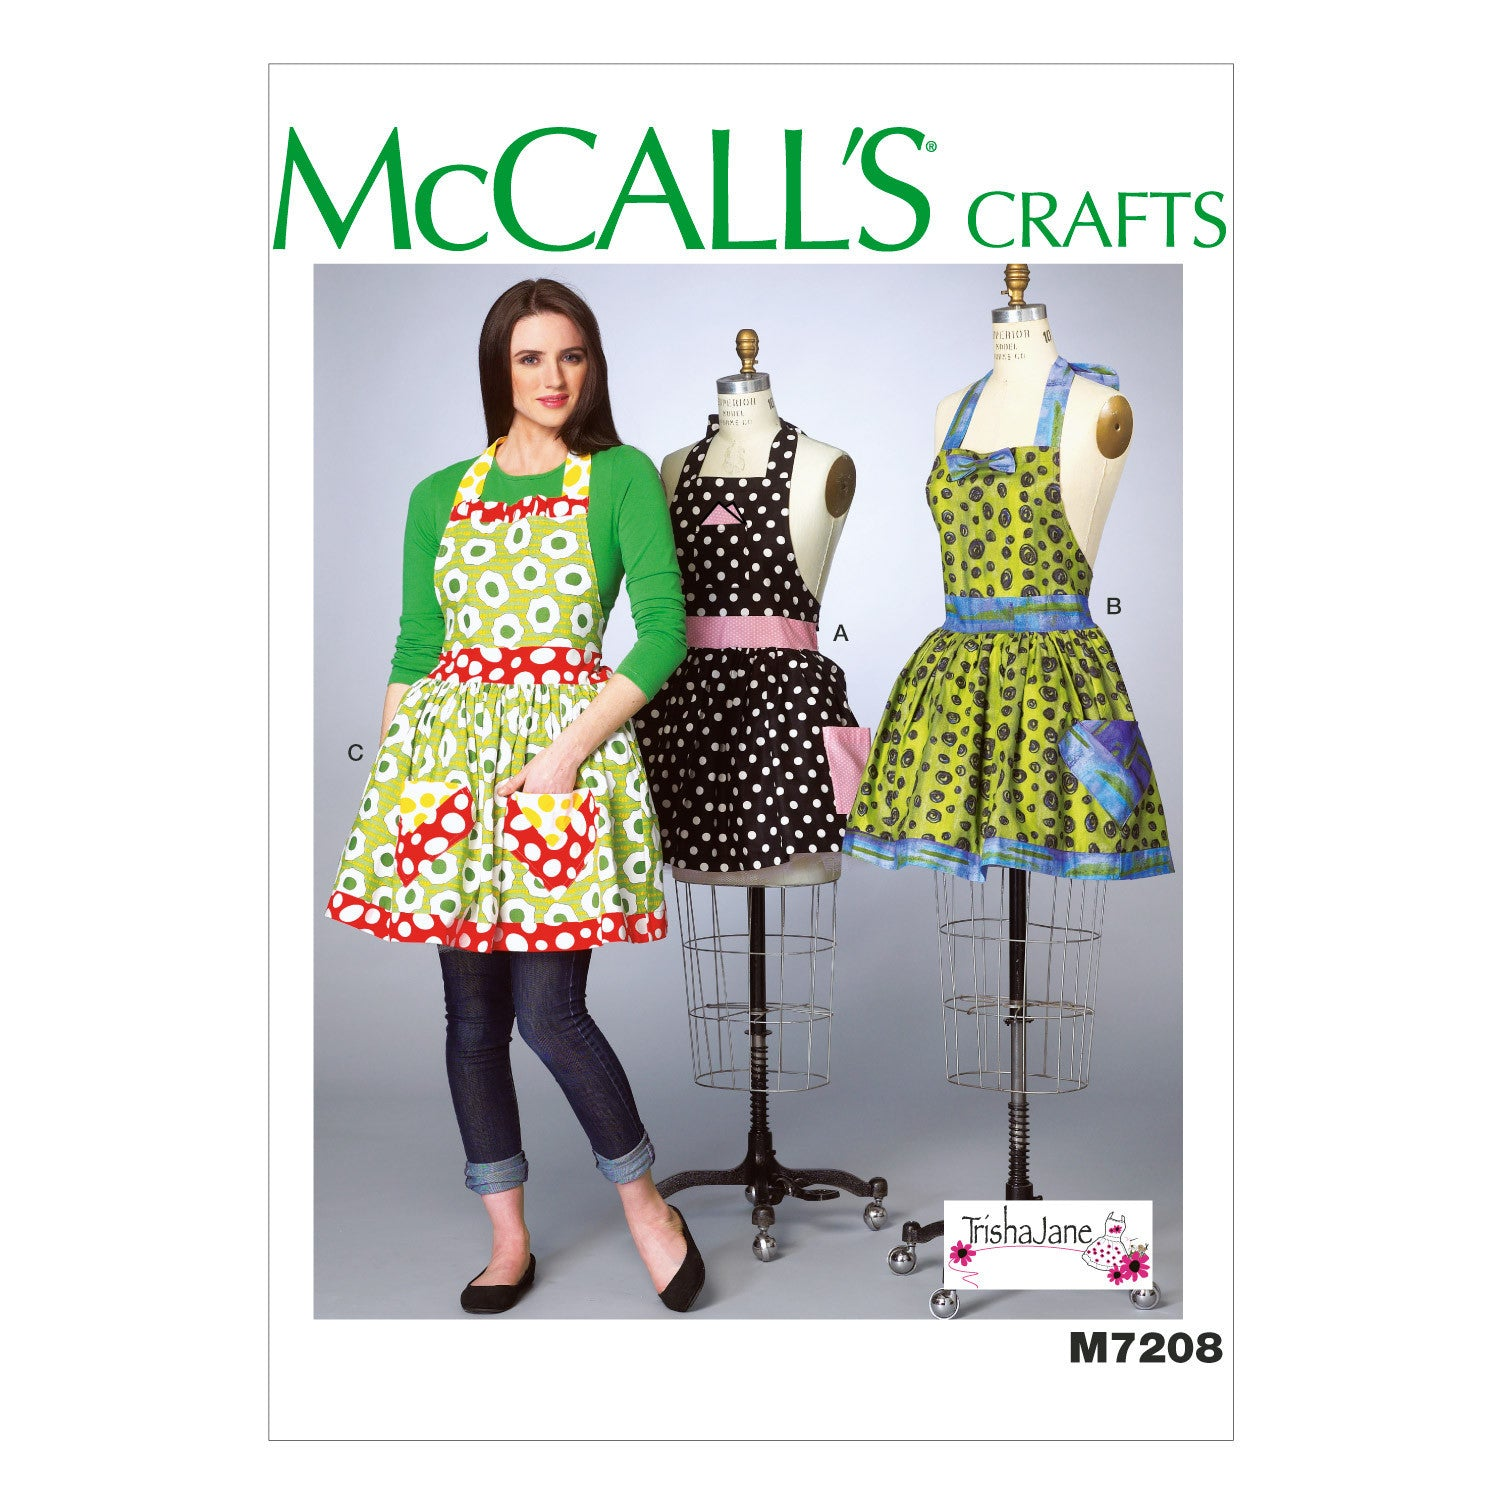 M7208 Misses' Aprons and Petticoat